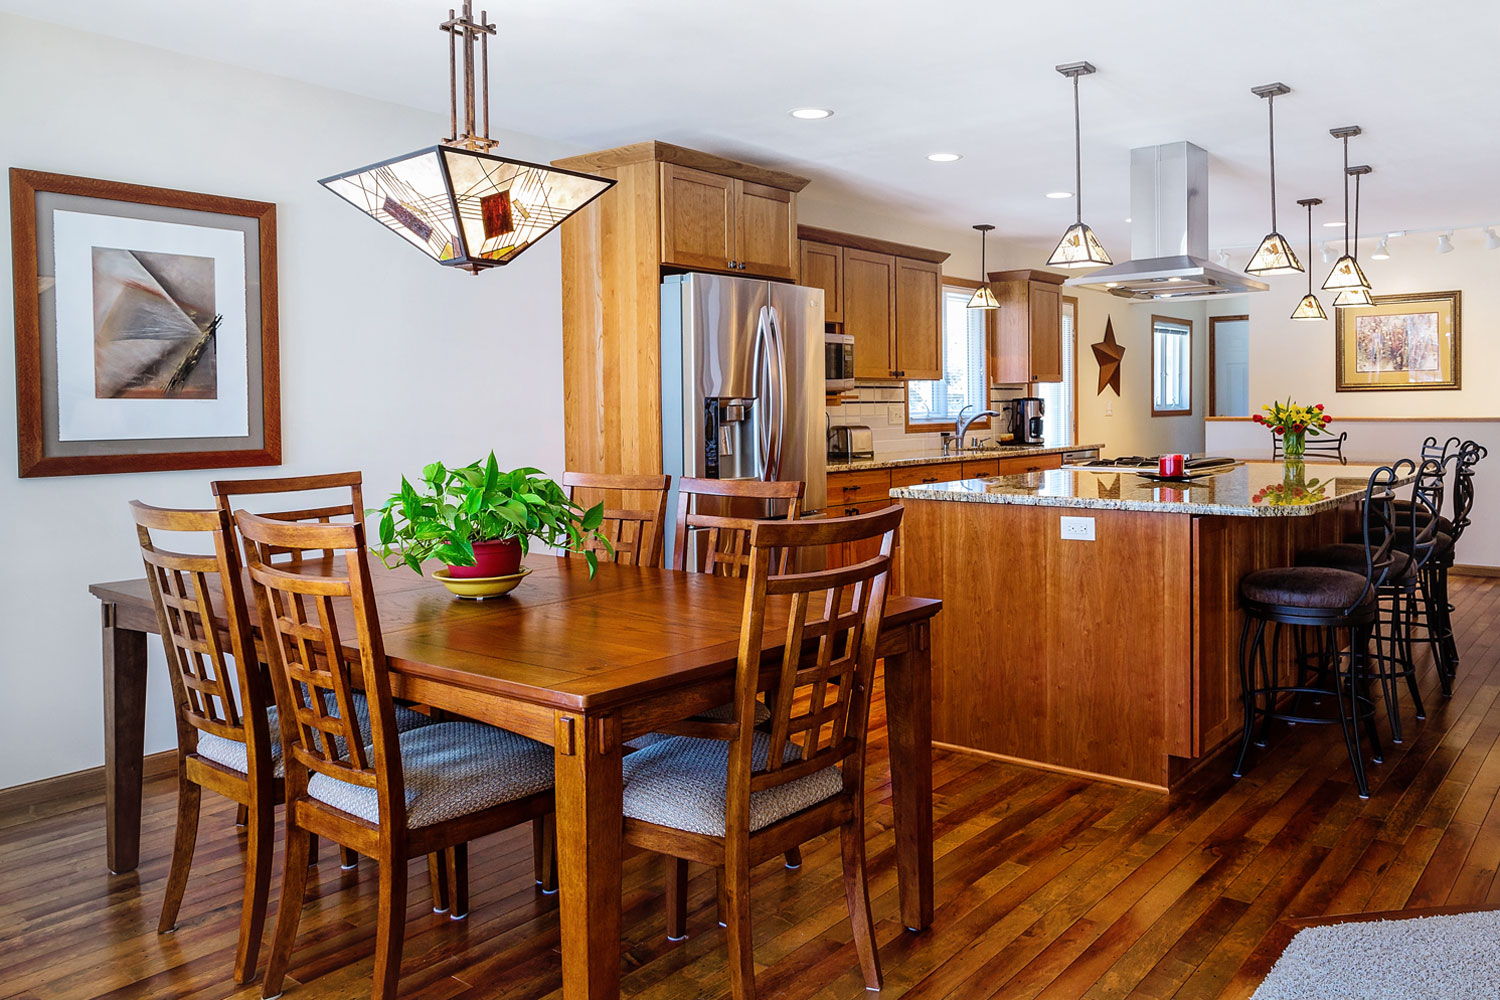 Grand Island Kitchen Degnan Design Build Remodel